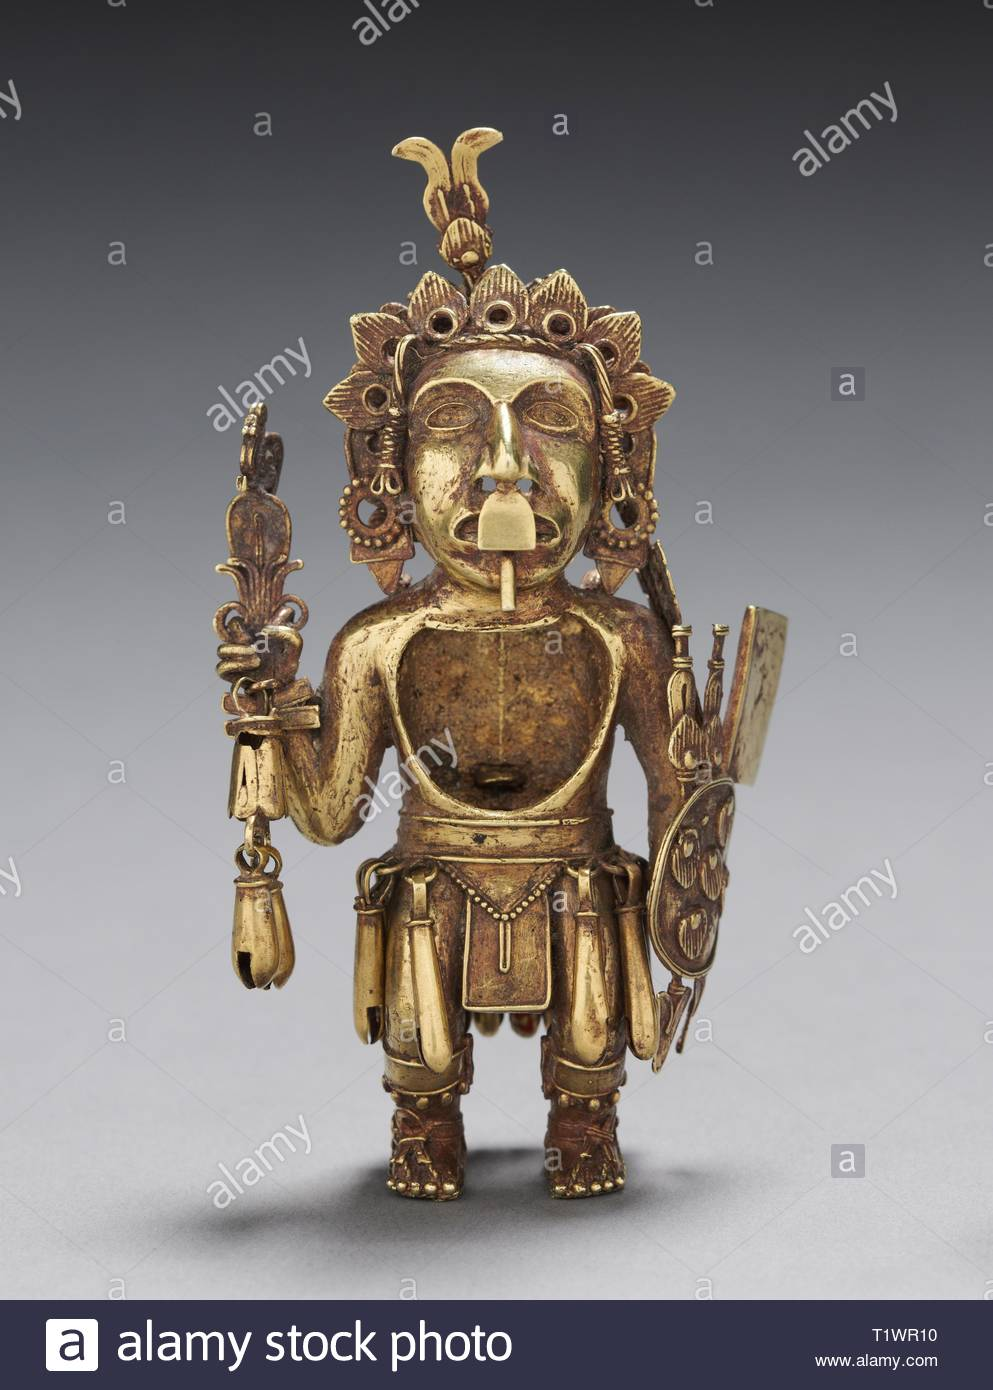 Figure of a Warrior, after 1325. Central Mexico, Tetzcoco?, Aztec, Post-Classic Period. Gold-silver-copper alloy (cast); overall: 11.2 x 6.1 cm (4 7/16 x 2 3/8 in.). - Stock Image